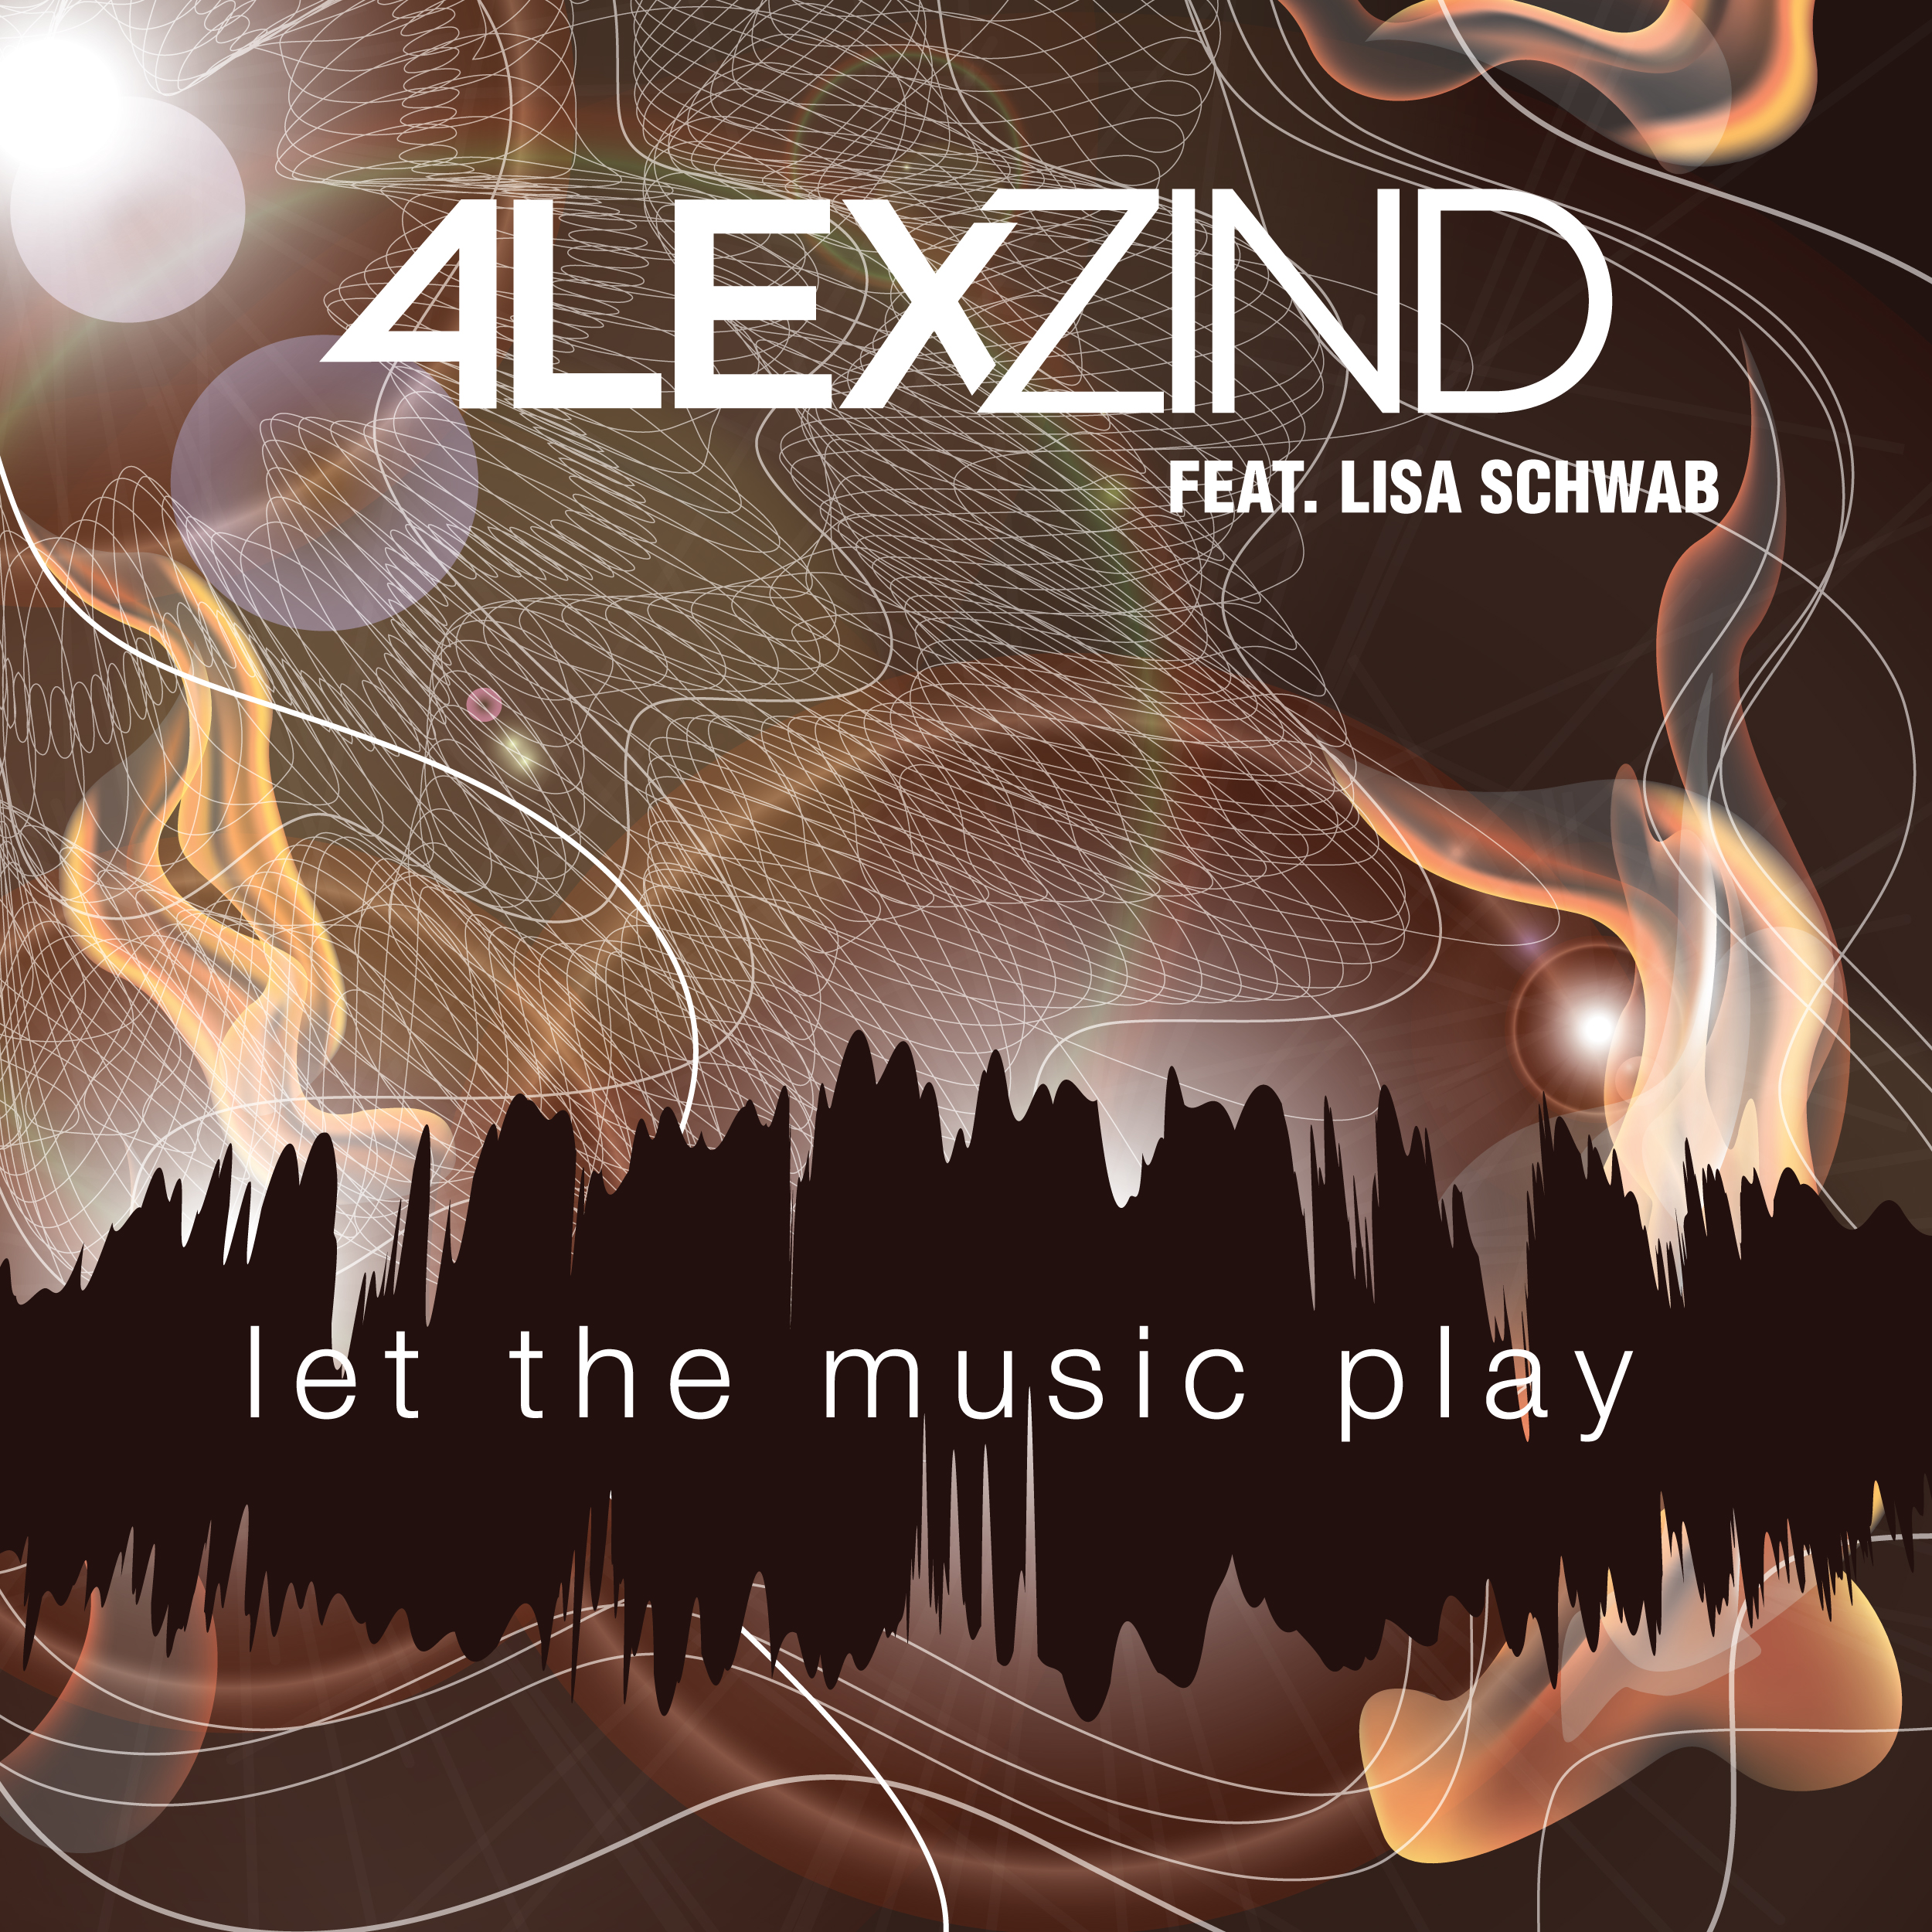 alex-zind_let-the-musi-play_digital-cover2500x2500